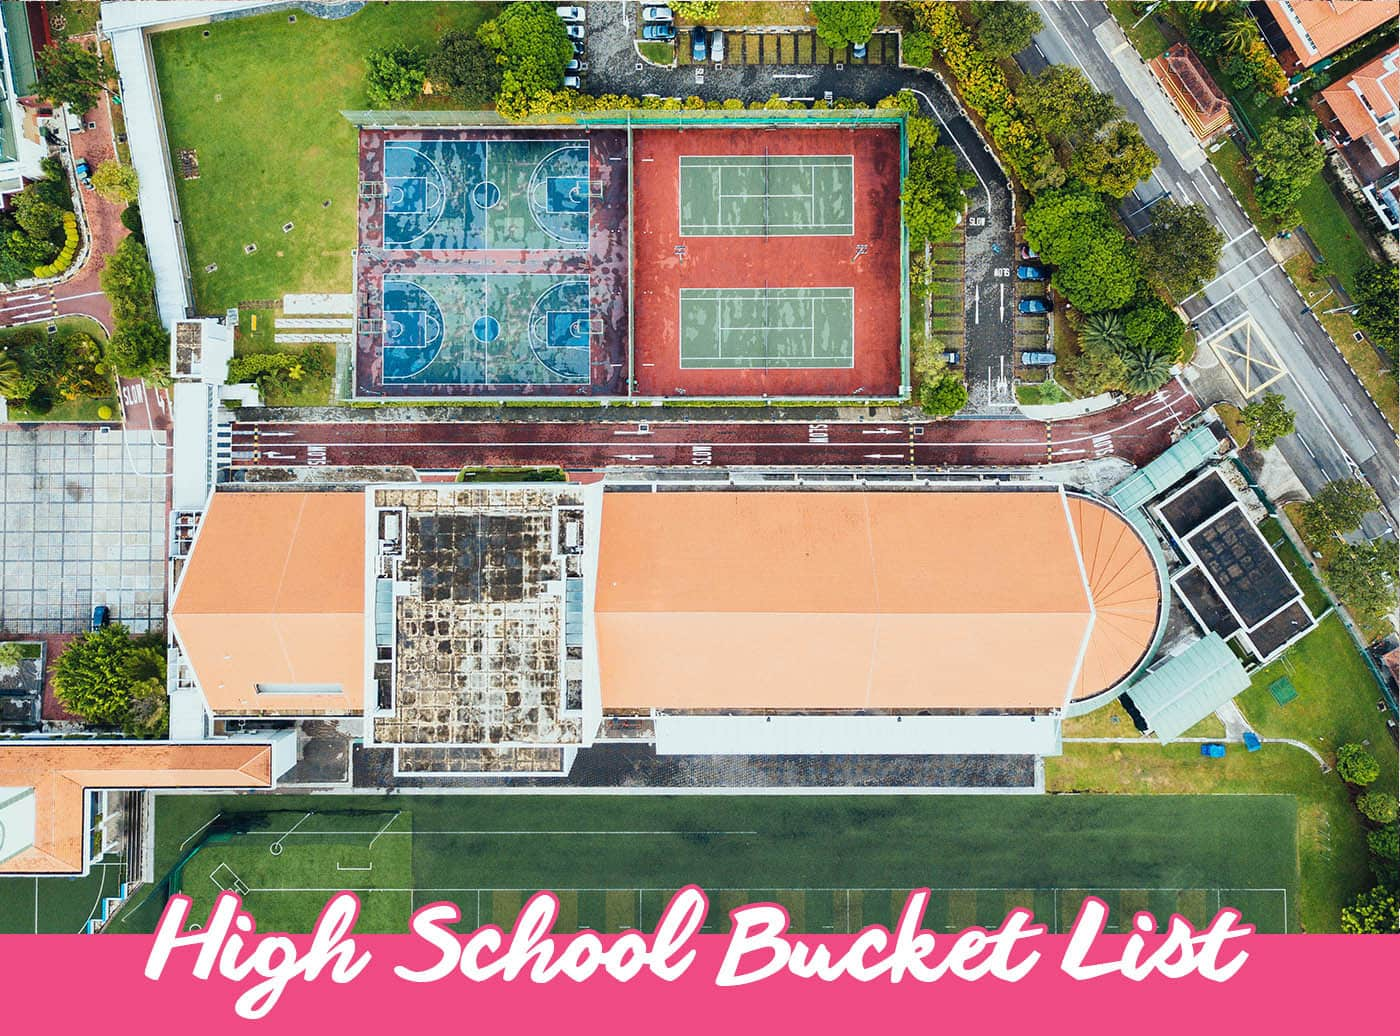 High School Bucket List - things to do before you graduate High School.   Bucket List Inspiration & Ideas